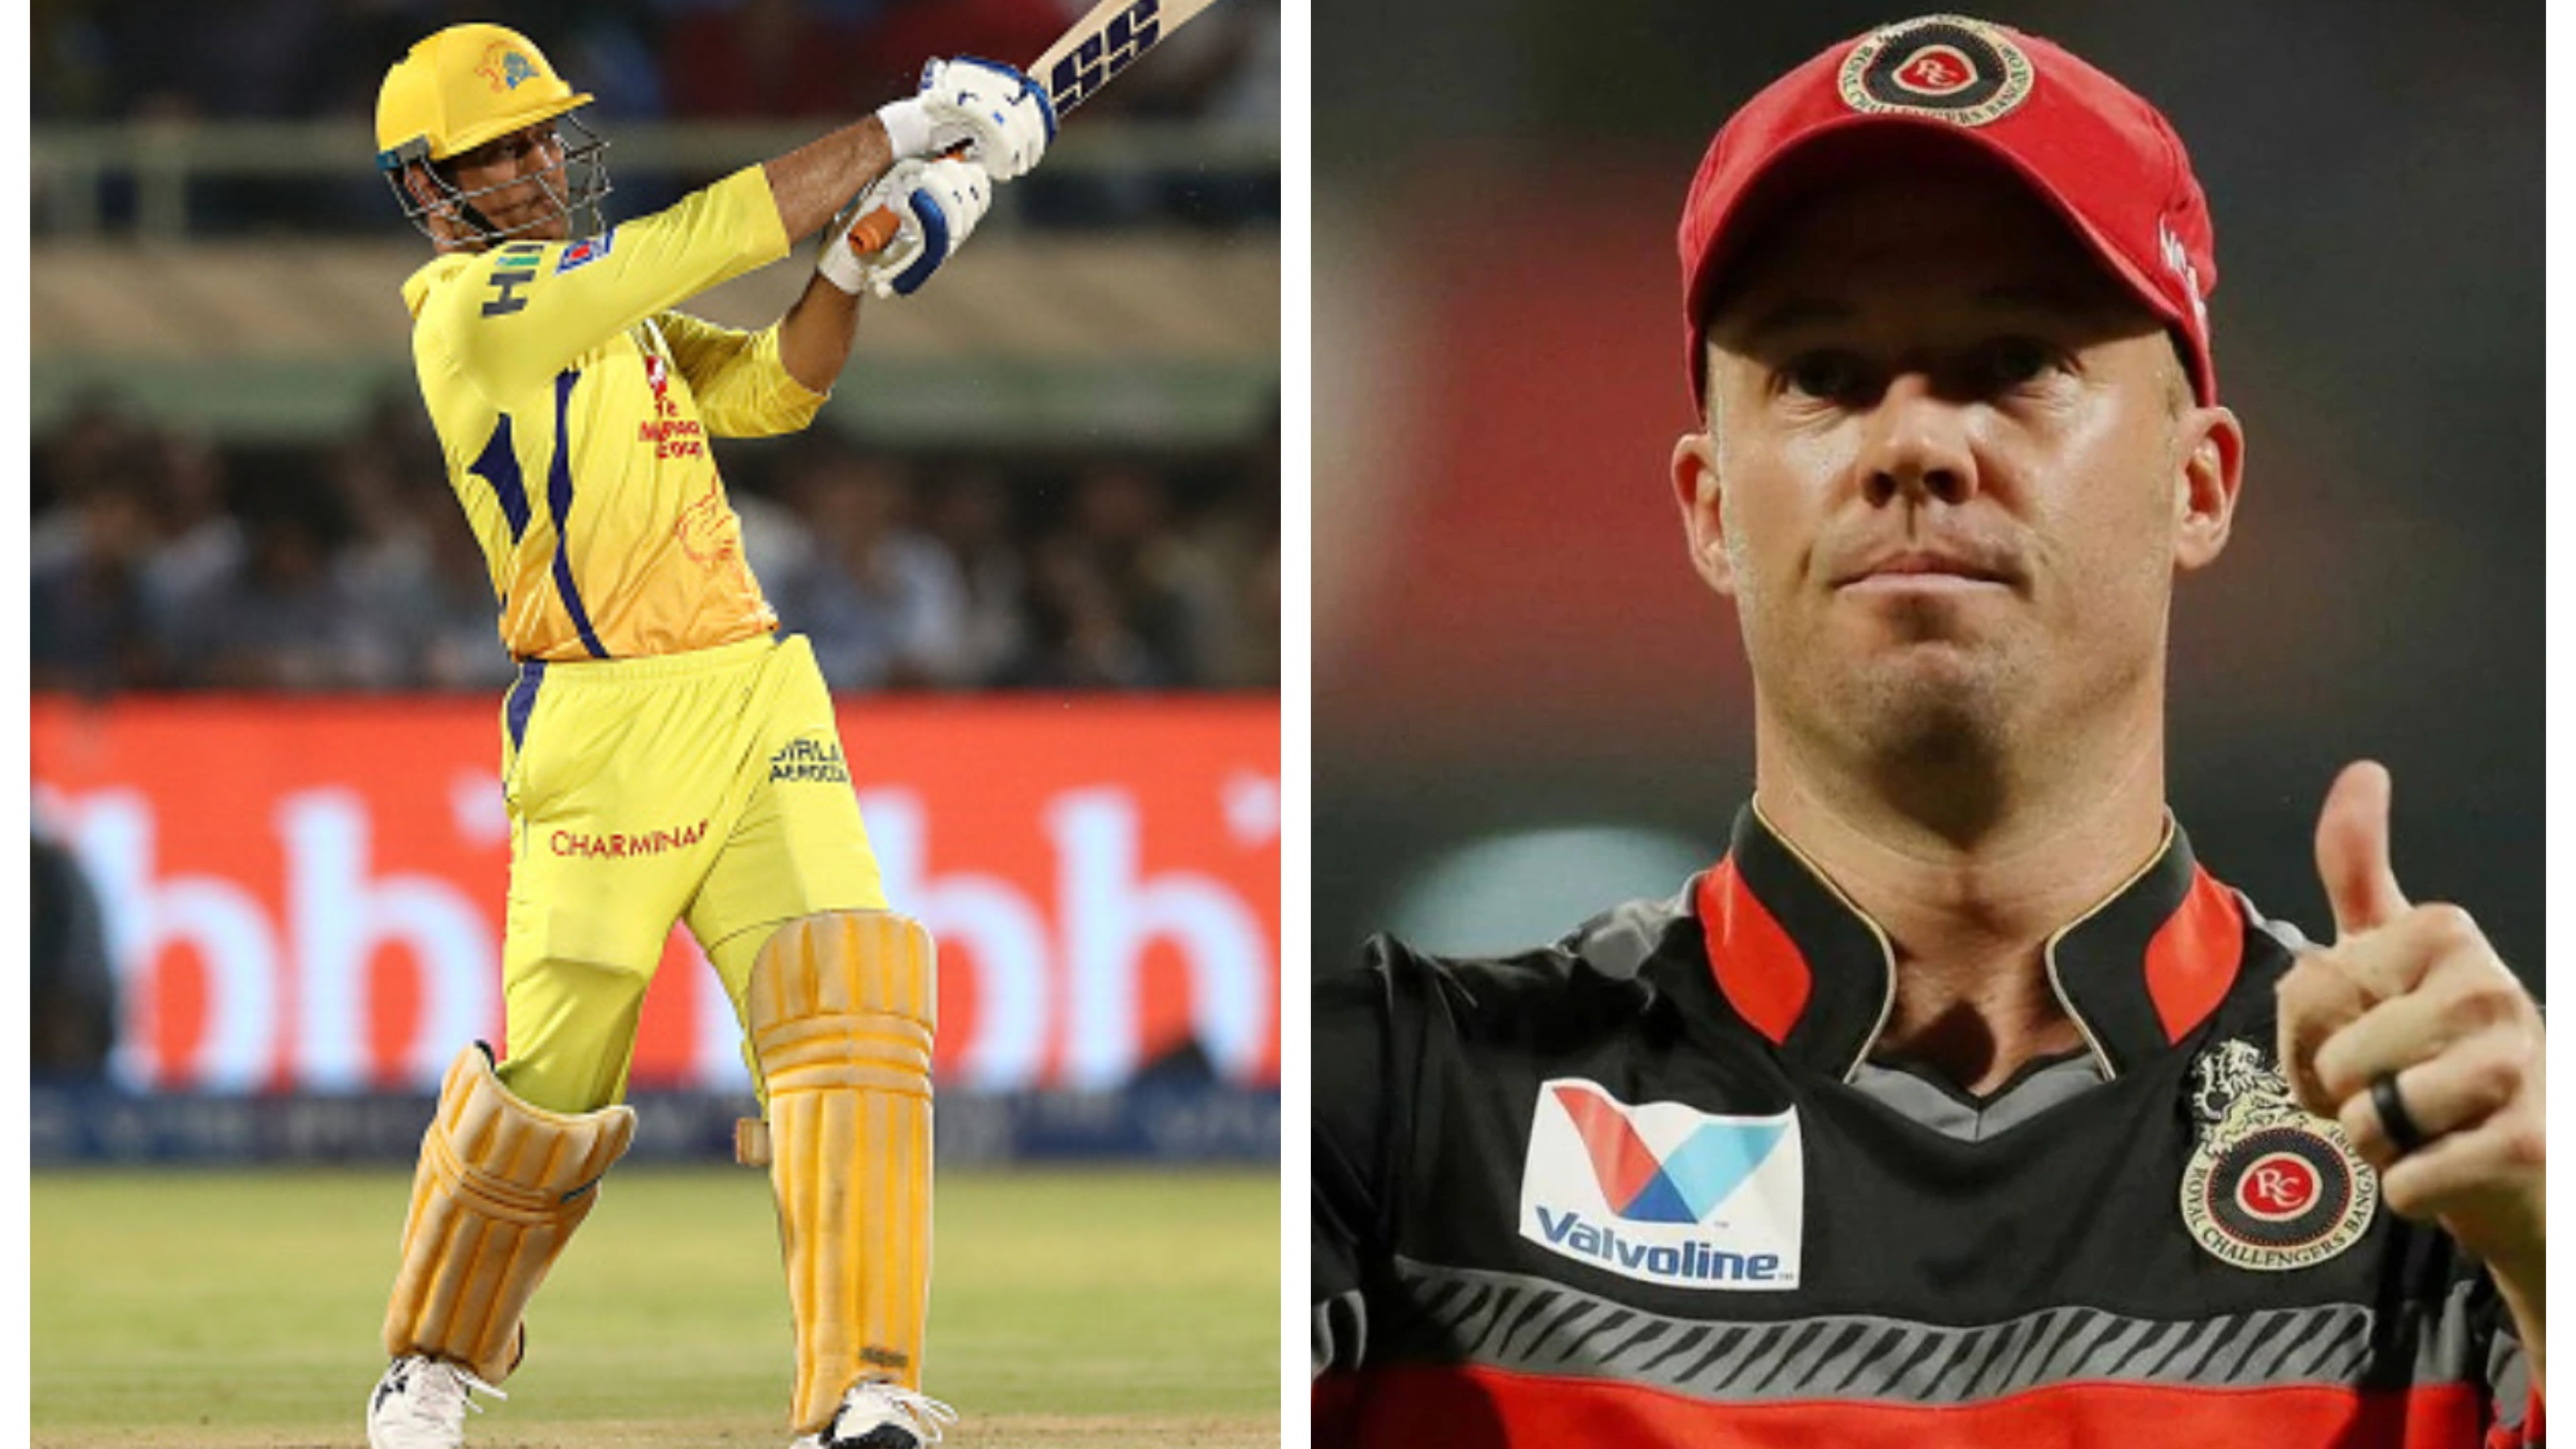 IPL 2021: AB de Villiers picks his all-time IPL XI, names MS Dhoni as leader of the star-studded line-up